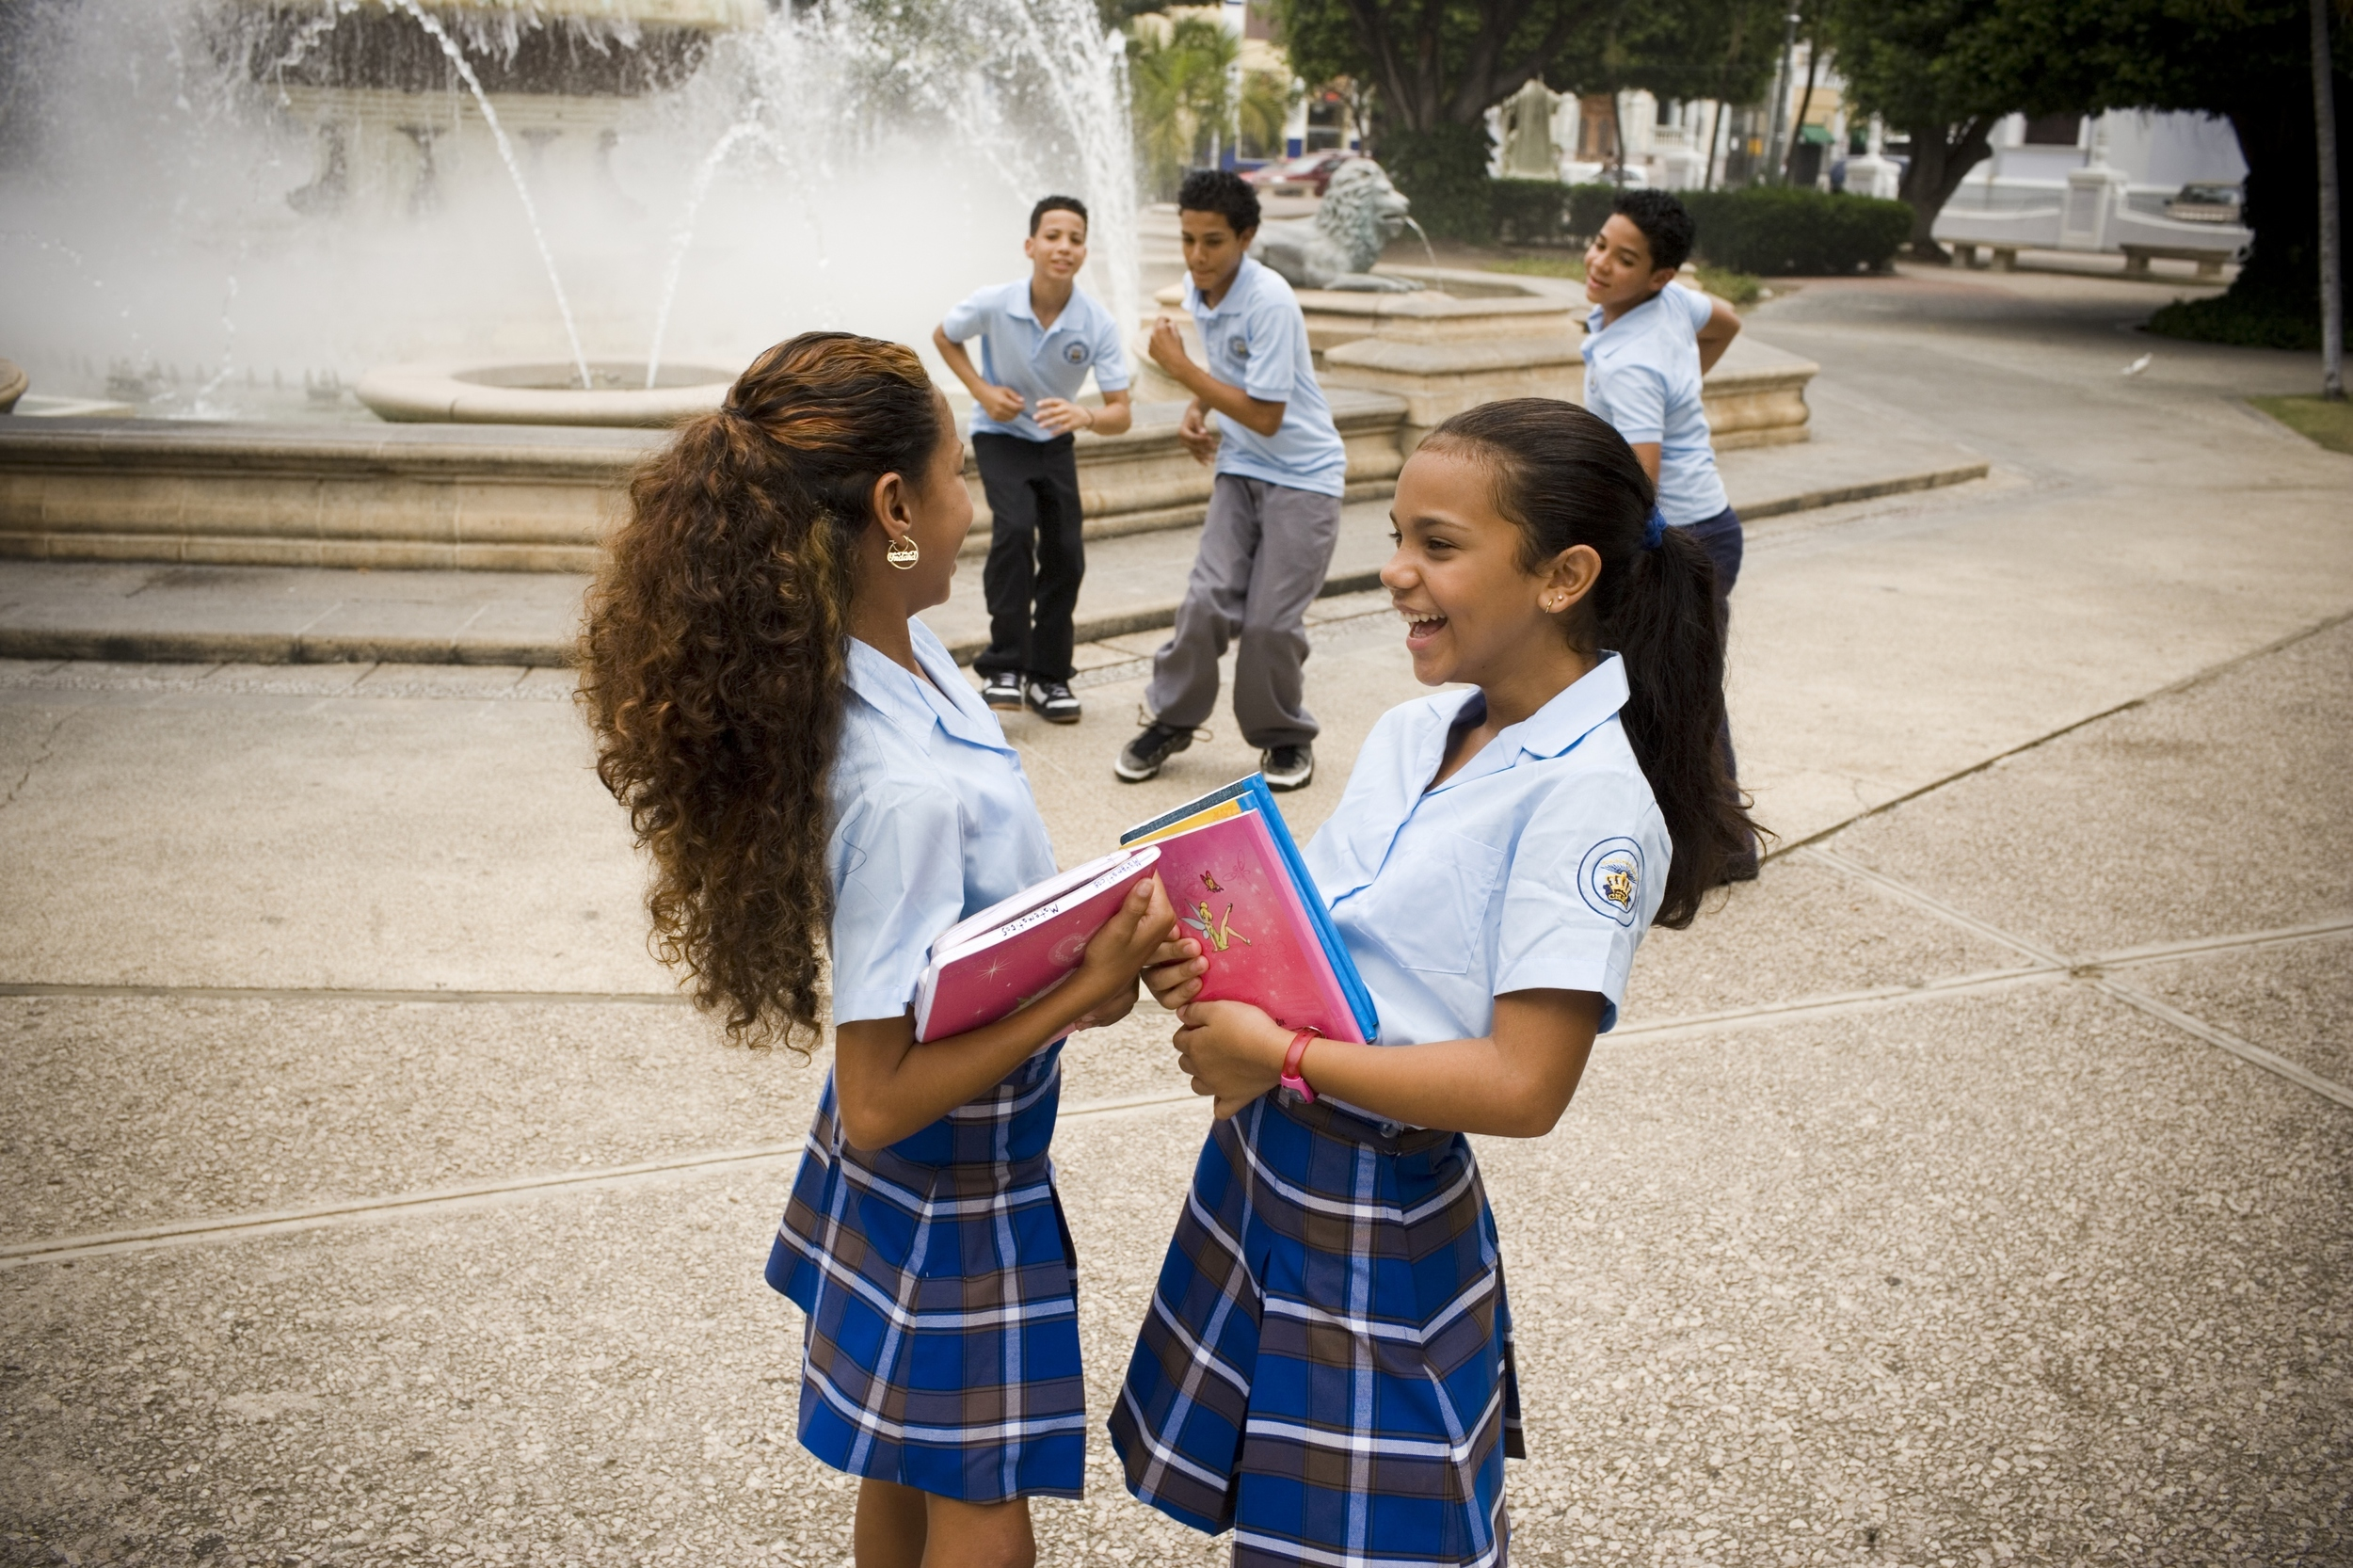 and cons of school uniforms essay pros and cons of school uniforms essay